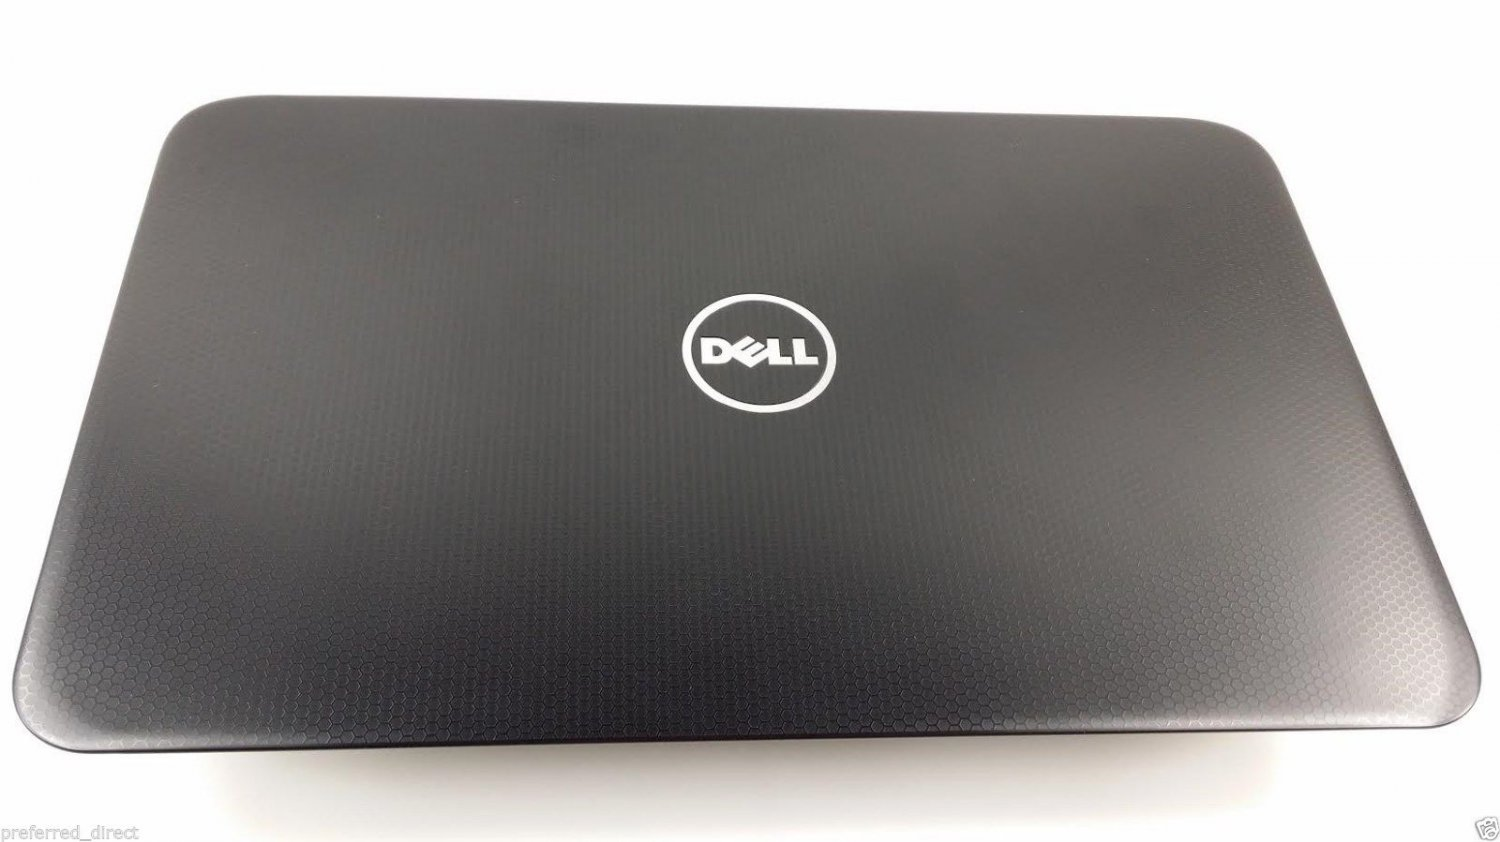 NEW - Dell Inspiron 5520 7520 LCD Switchable Back Cover - P/N 9509X